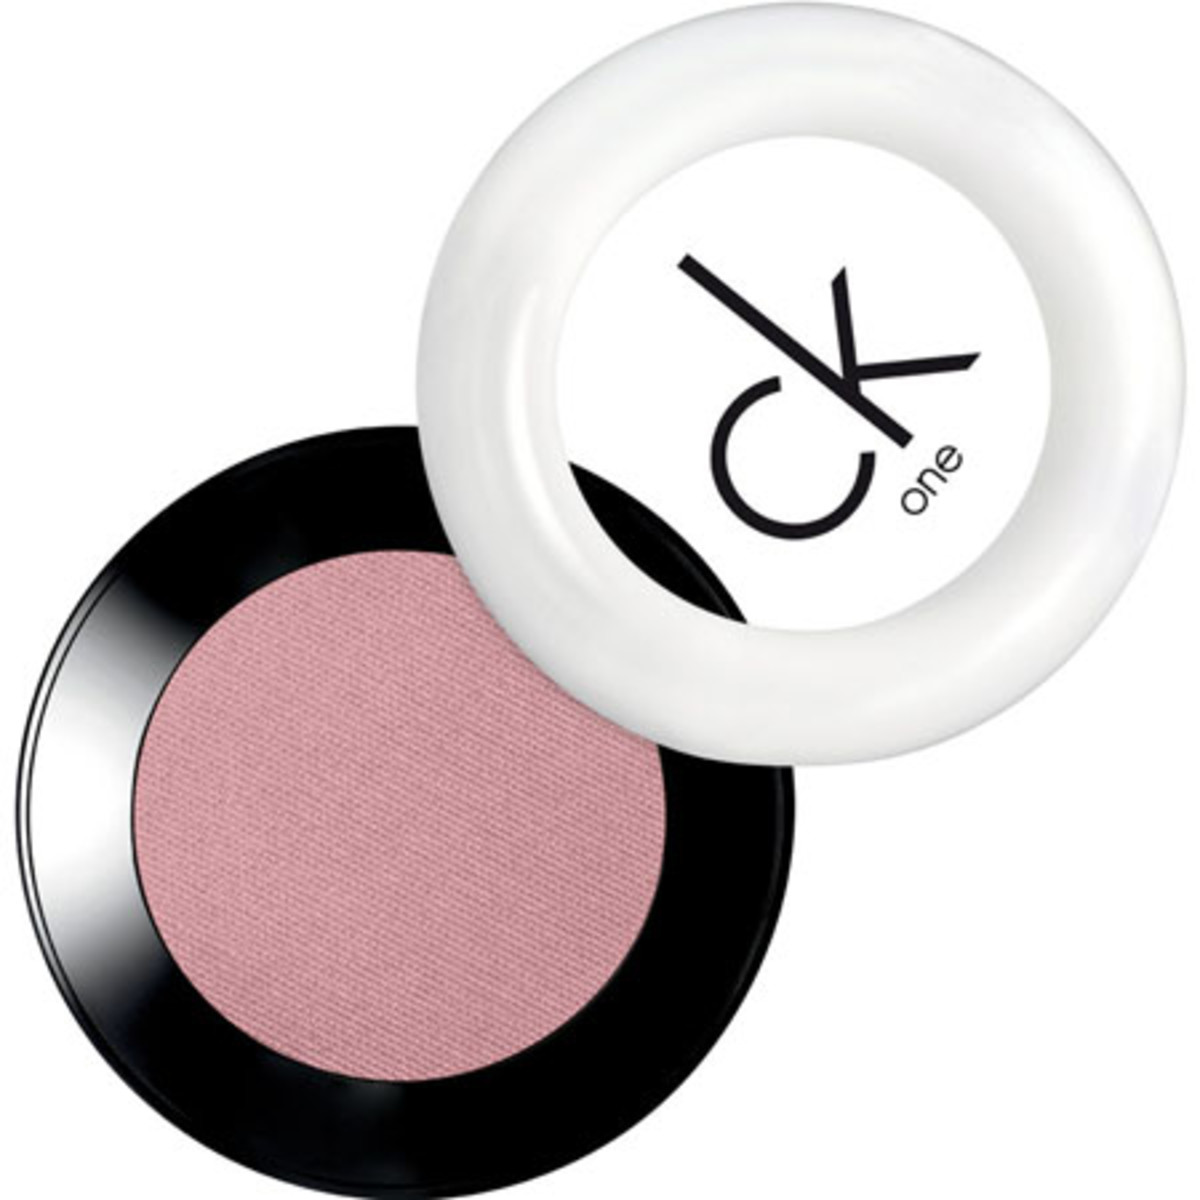 CK One Color Powder Eyeshadow in Expose